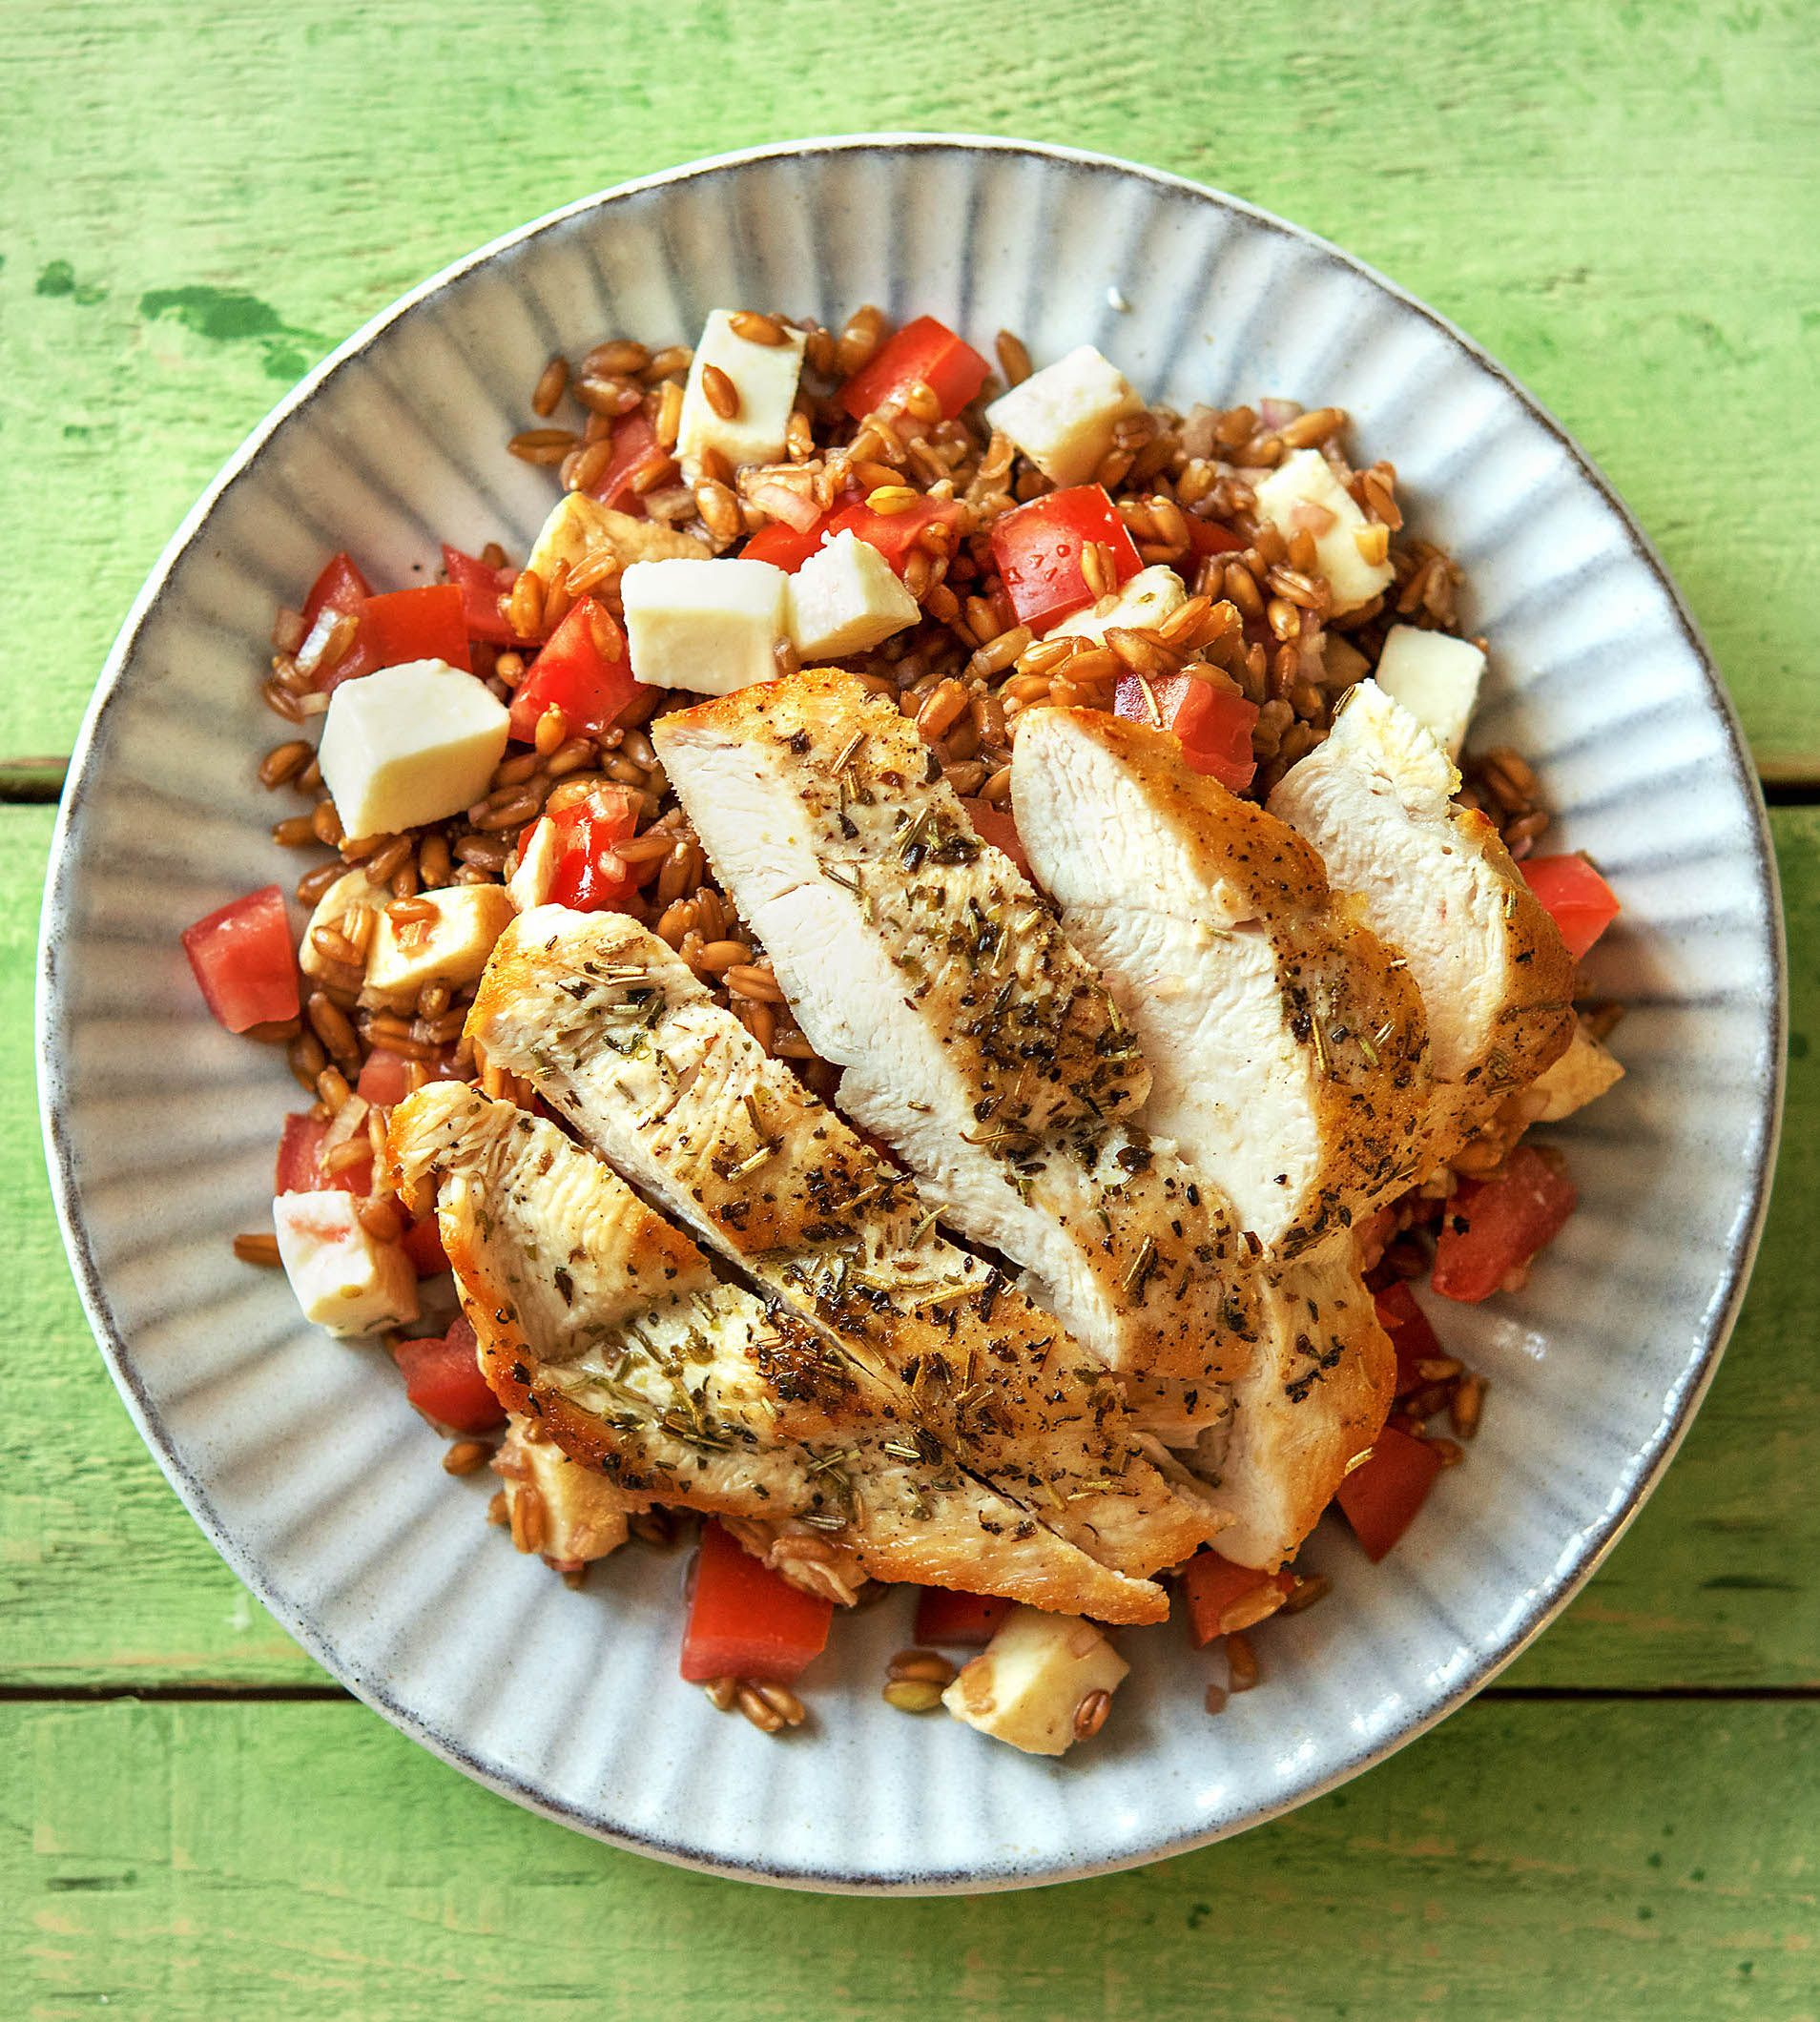 Herby pan seared chicken with farro tomatoes and fresh herby pan seared chicken with farro tomatoes and fresh mozzarella recipe herbes de provence dinner ideas and provence forumfinder Choice Image